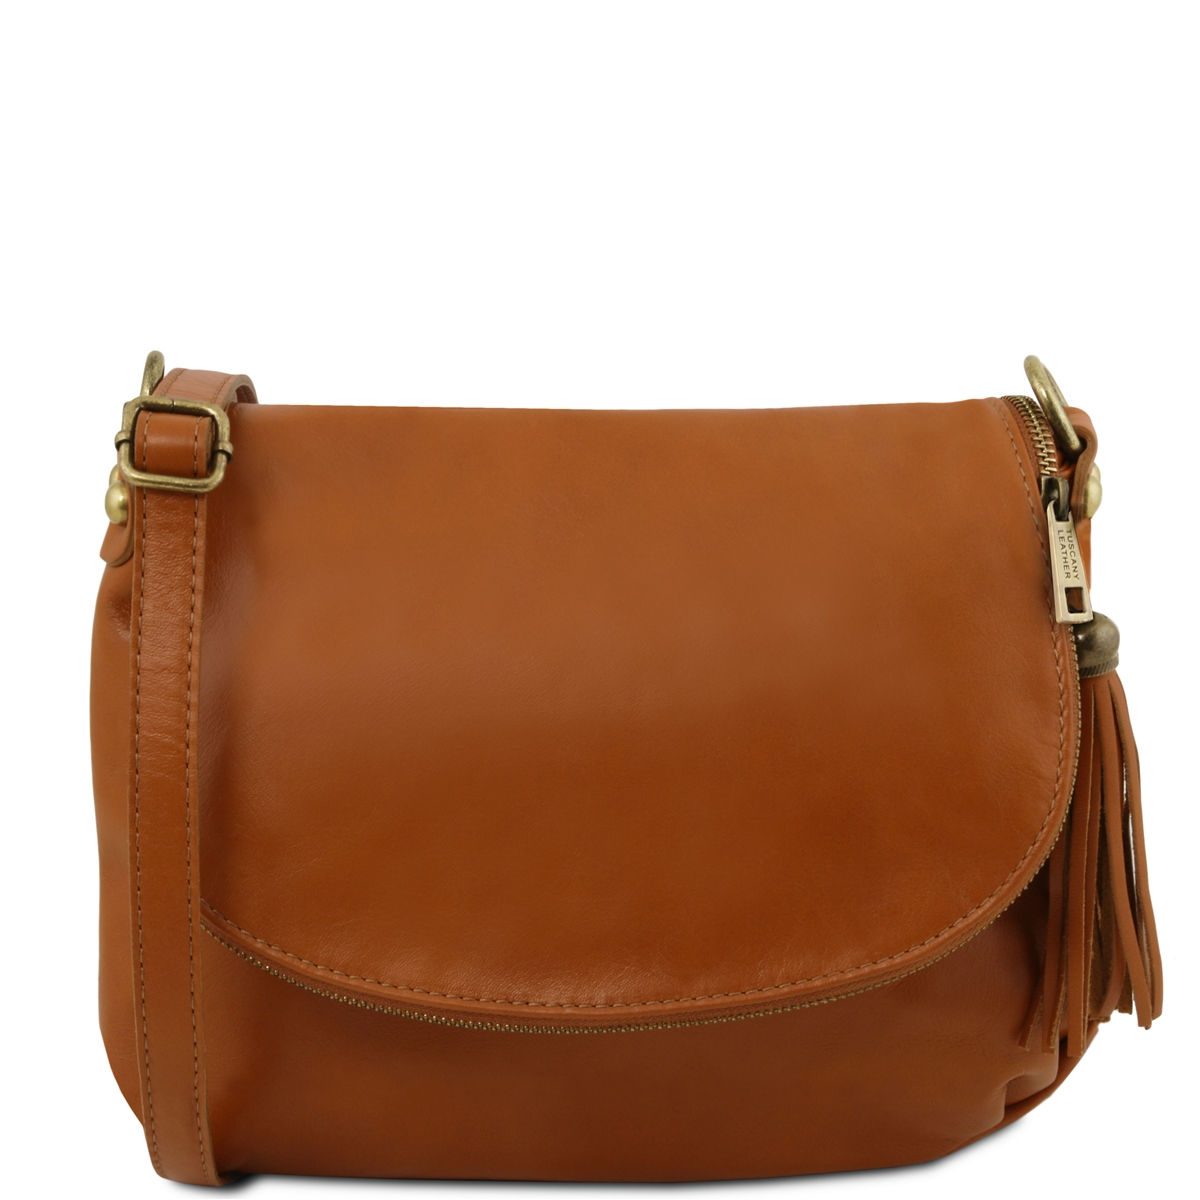 Tuscany Leather TL141223 Small Soft leather shoulder bag - Cognac 81c02e08f6acb